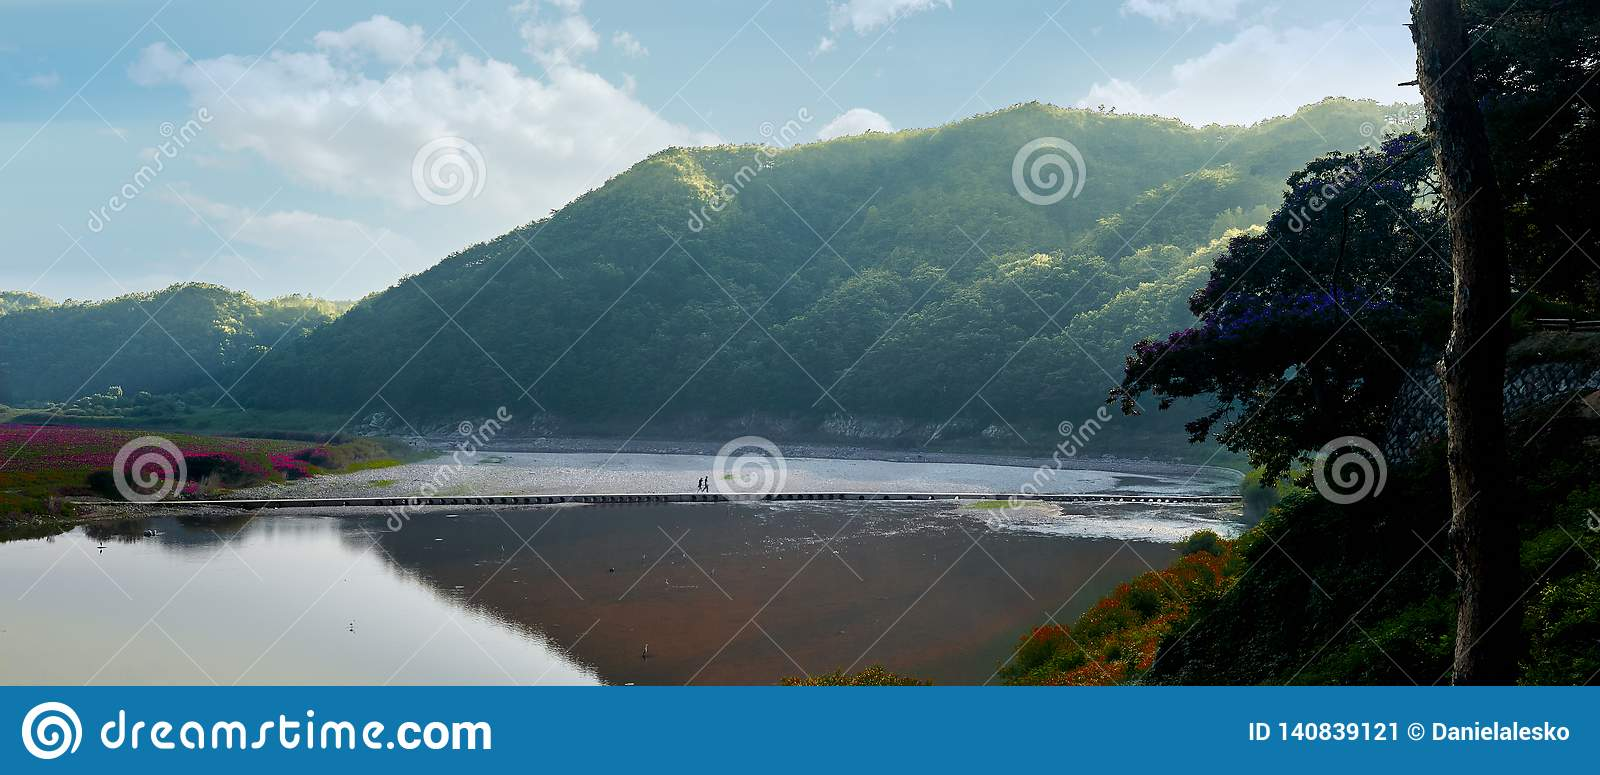 The mountains and river of Andong, South Korea